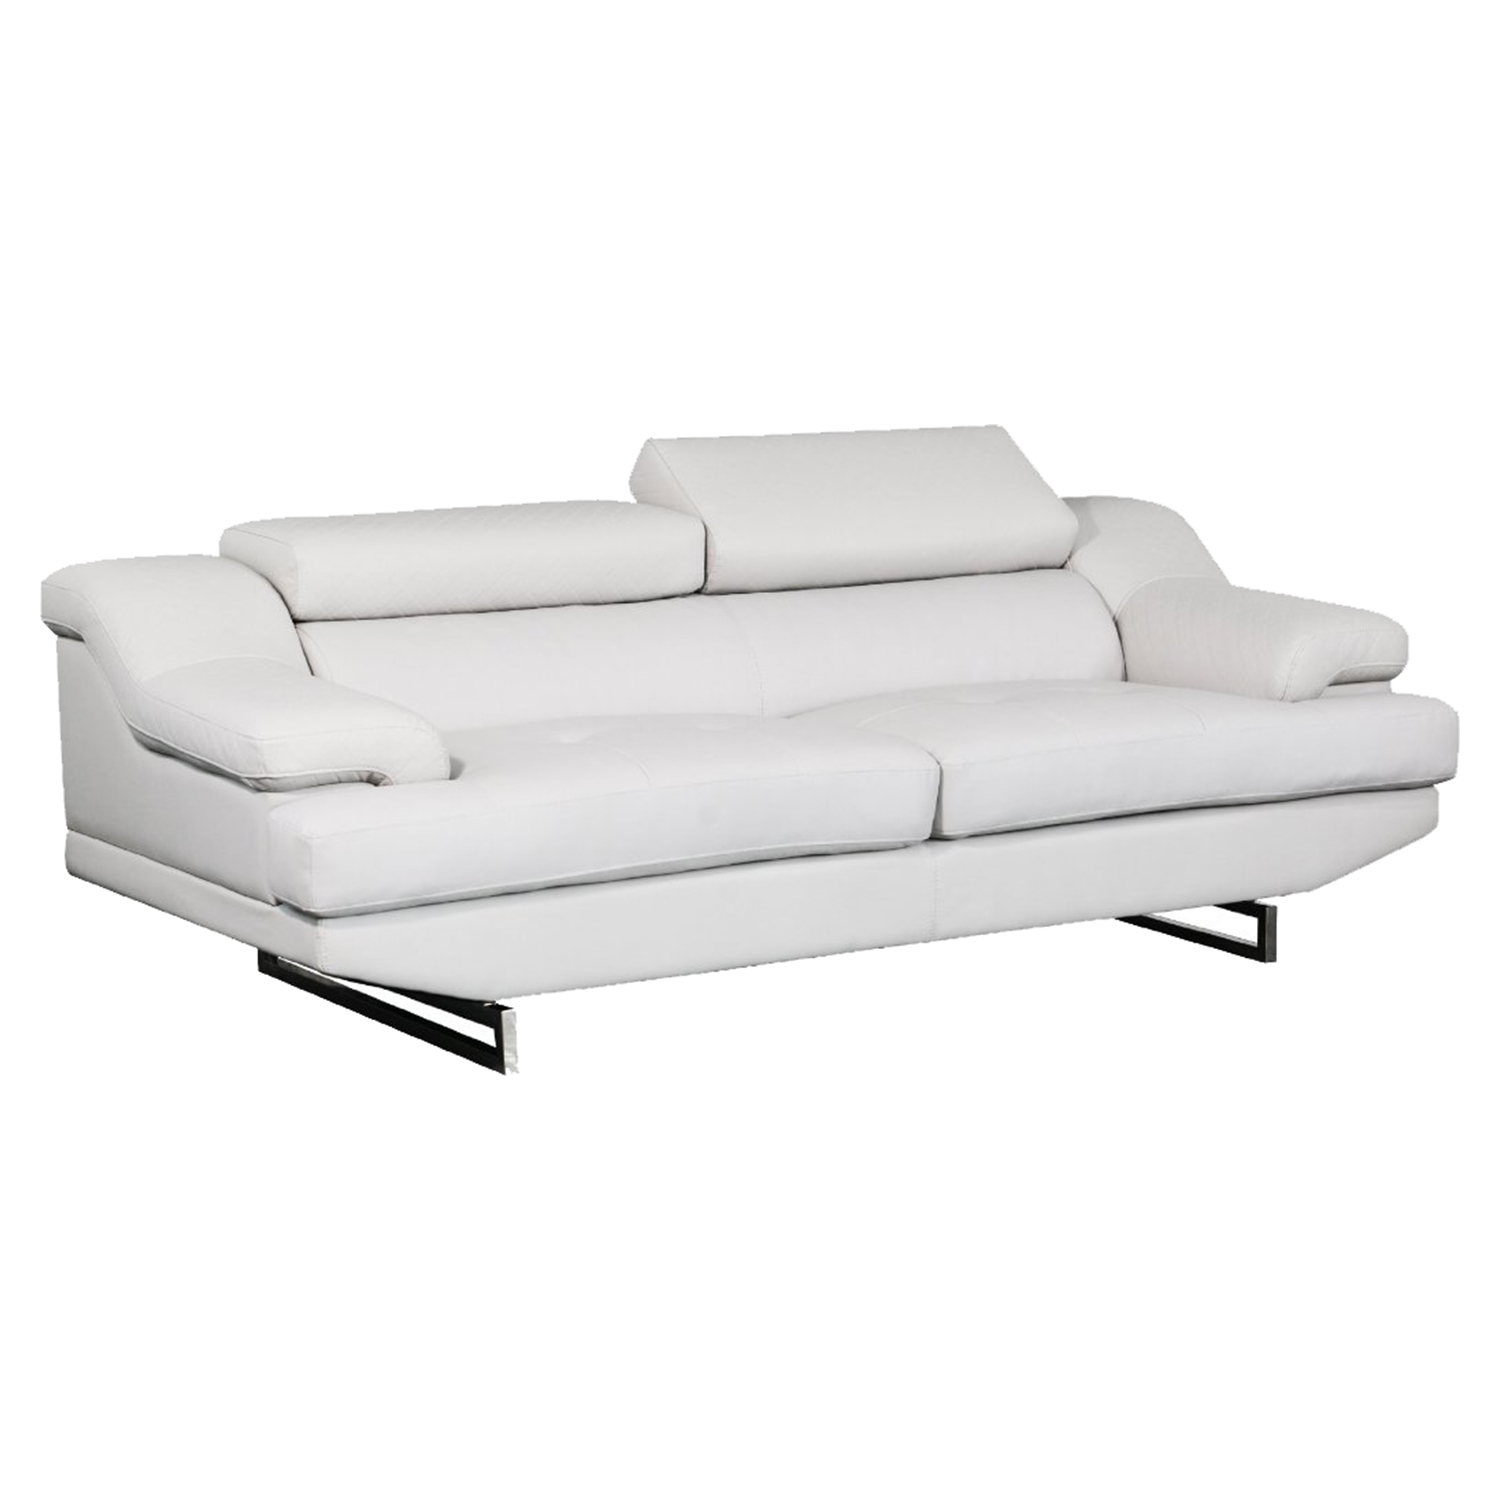 Charlotte Sofa in Light Gray Leather